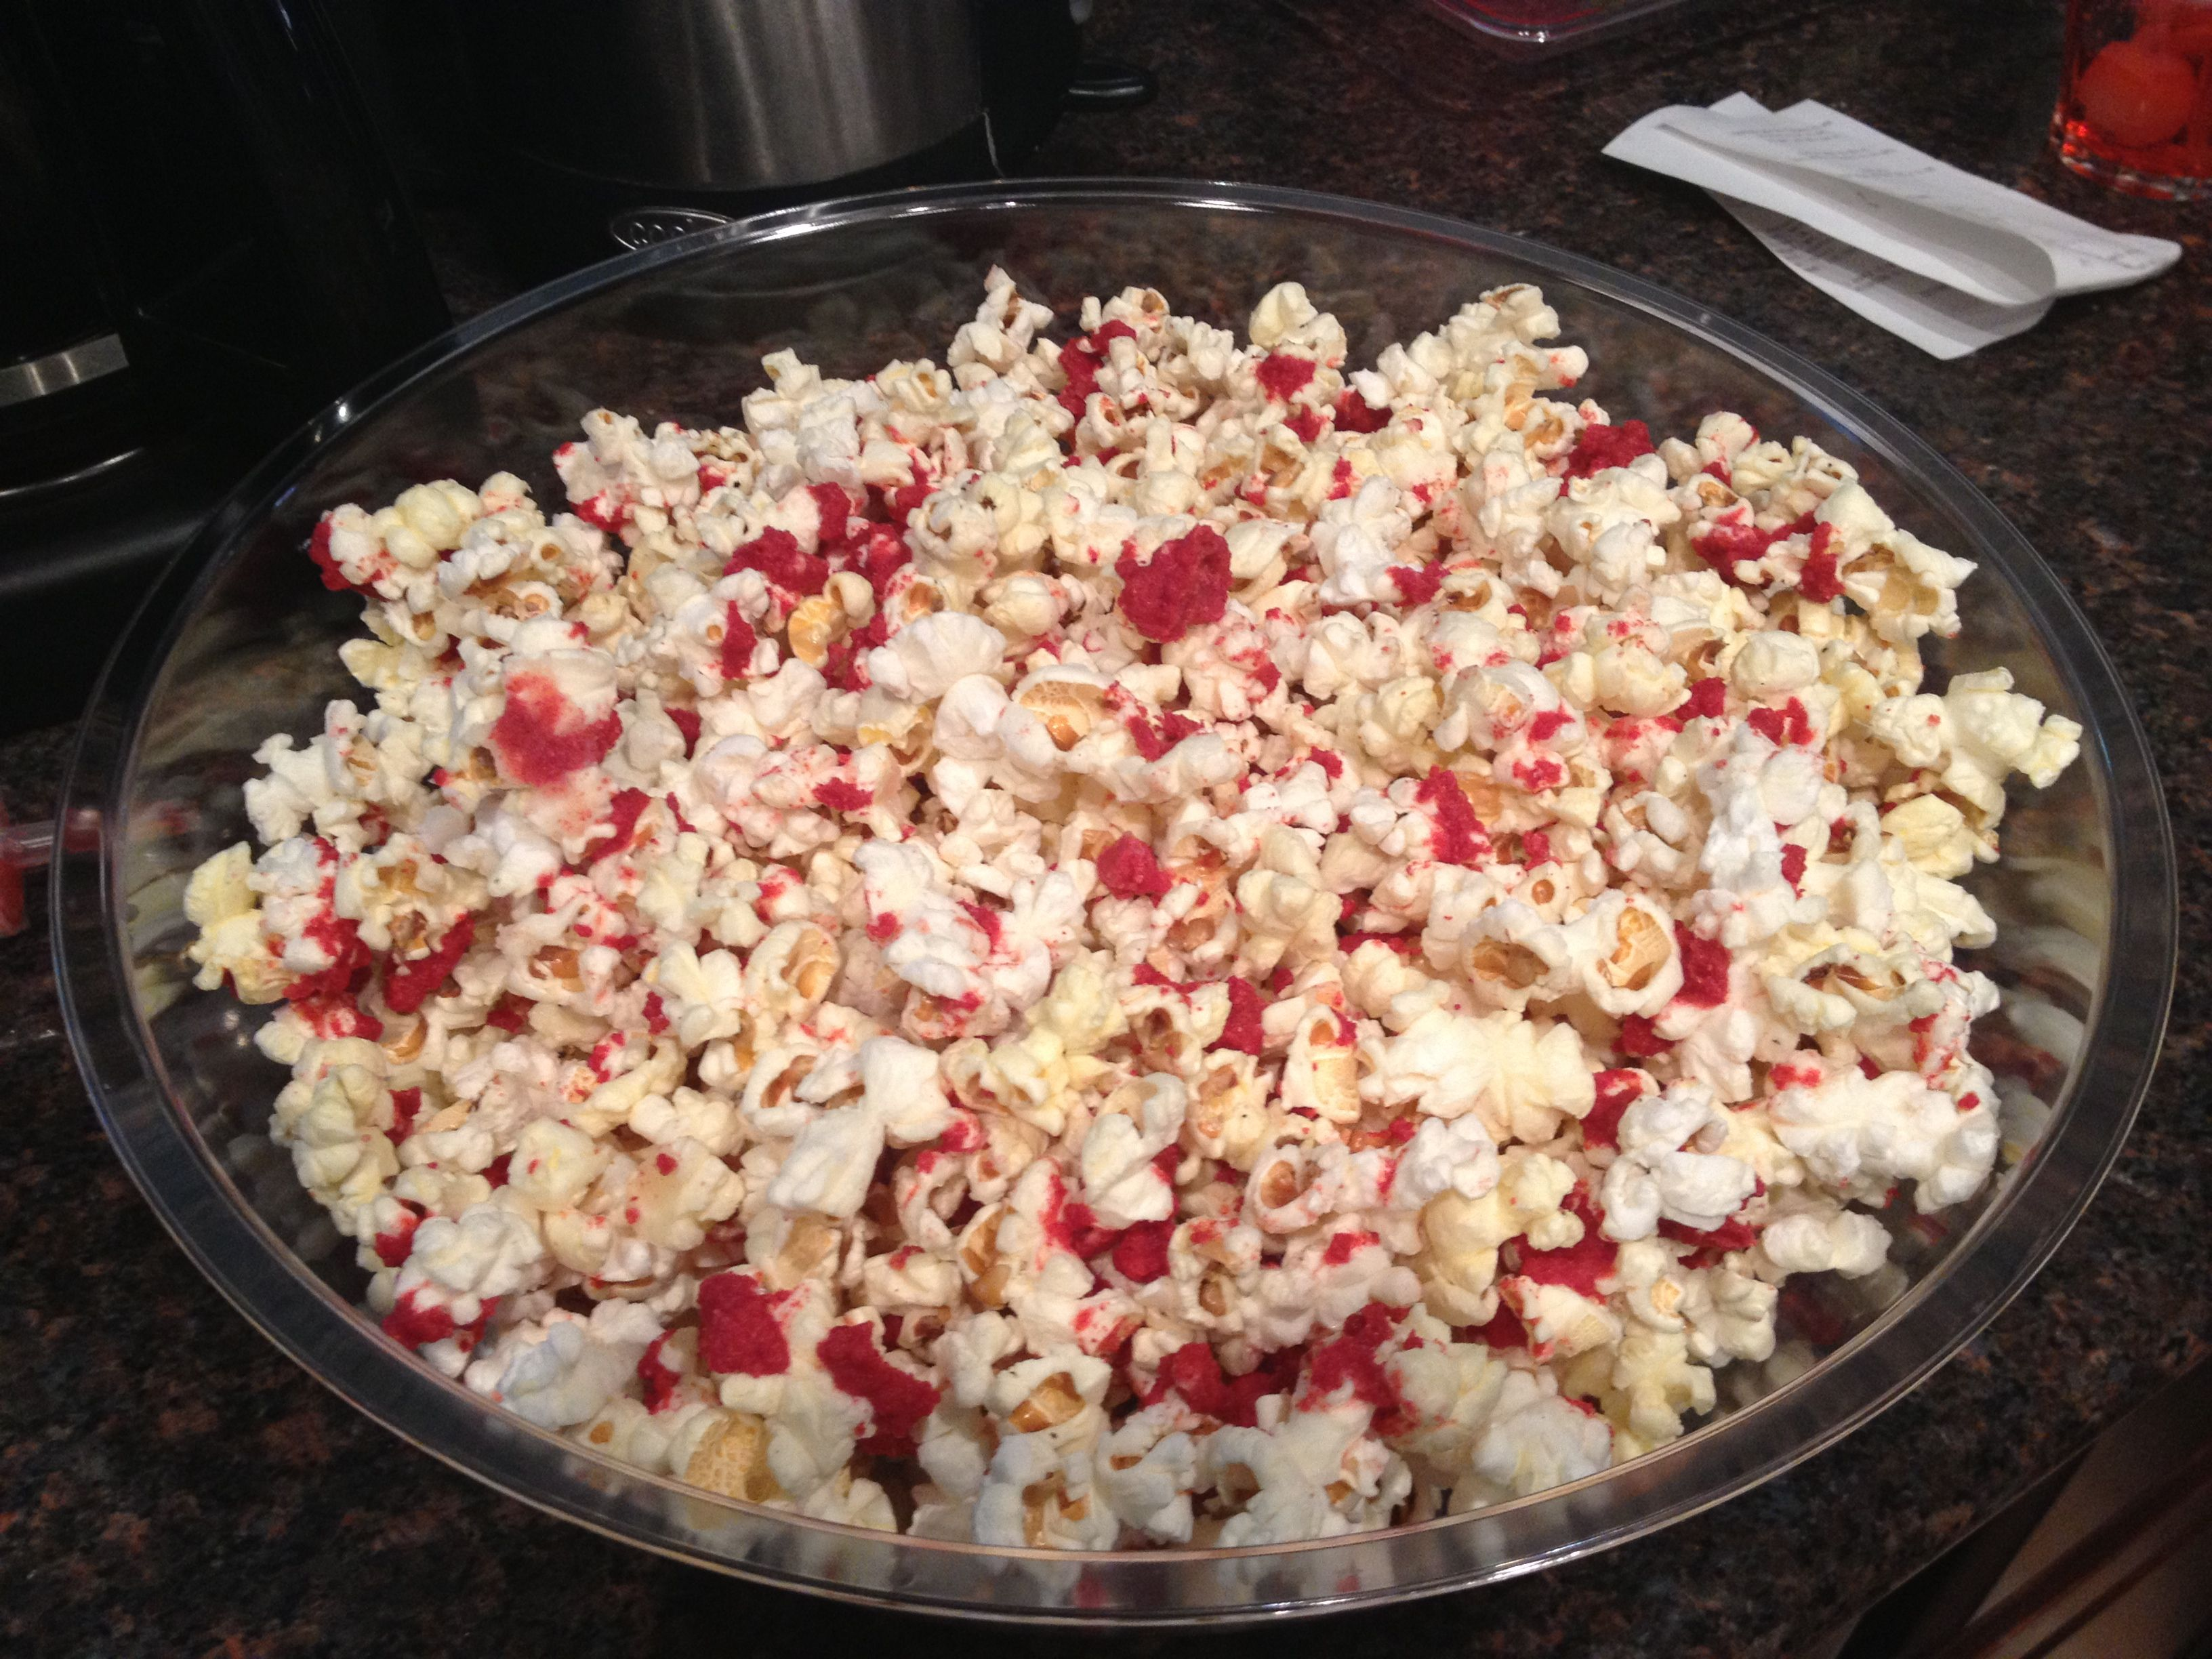 Blood spatter popcorn for Dexter finale - (white chocolate with ...